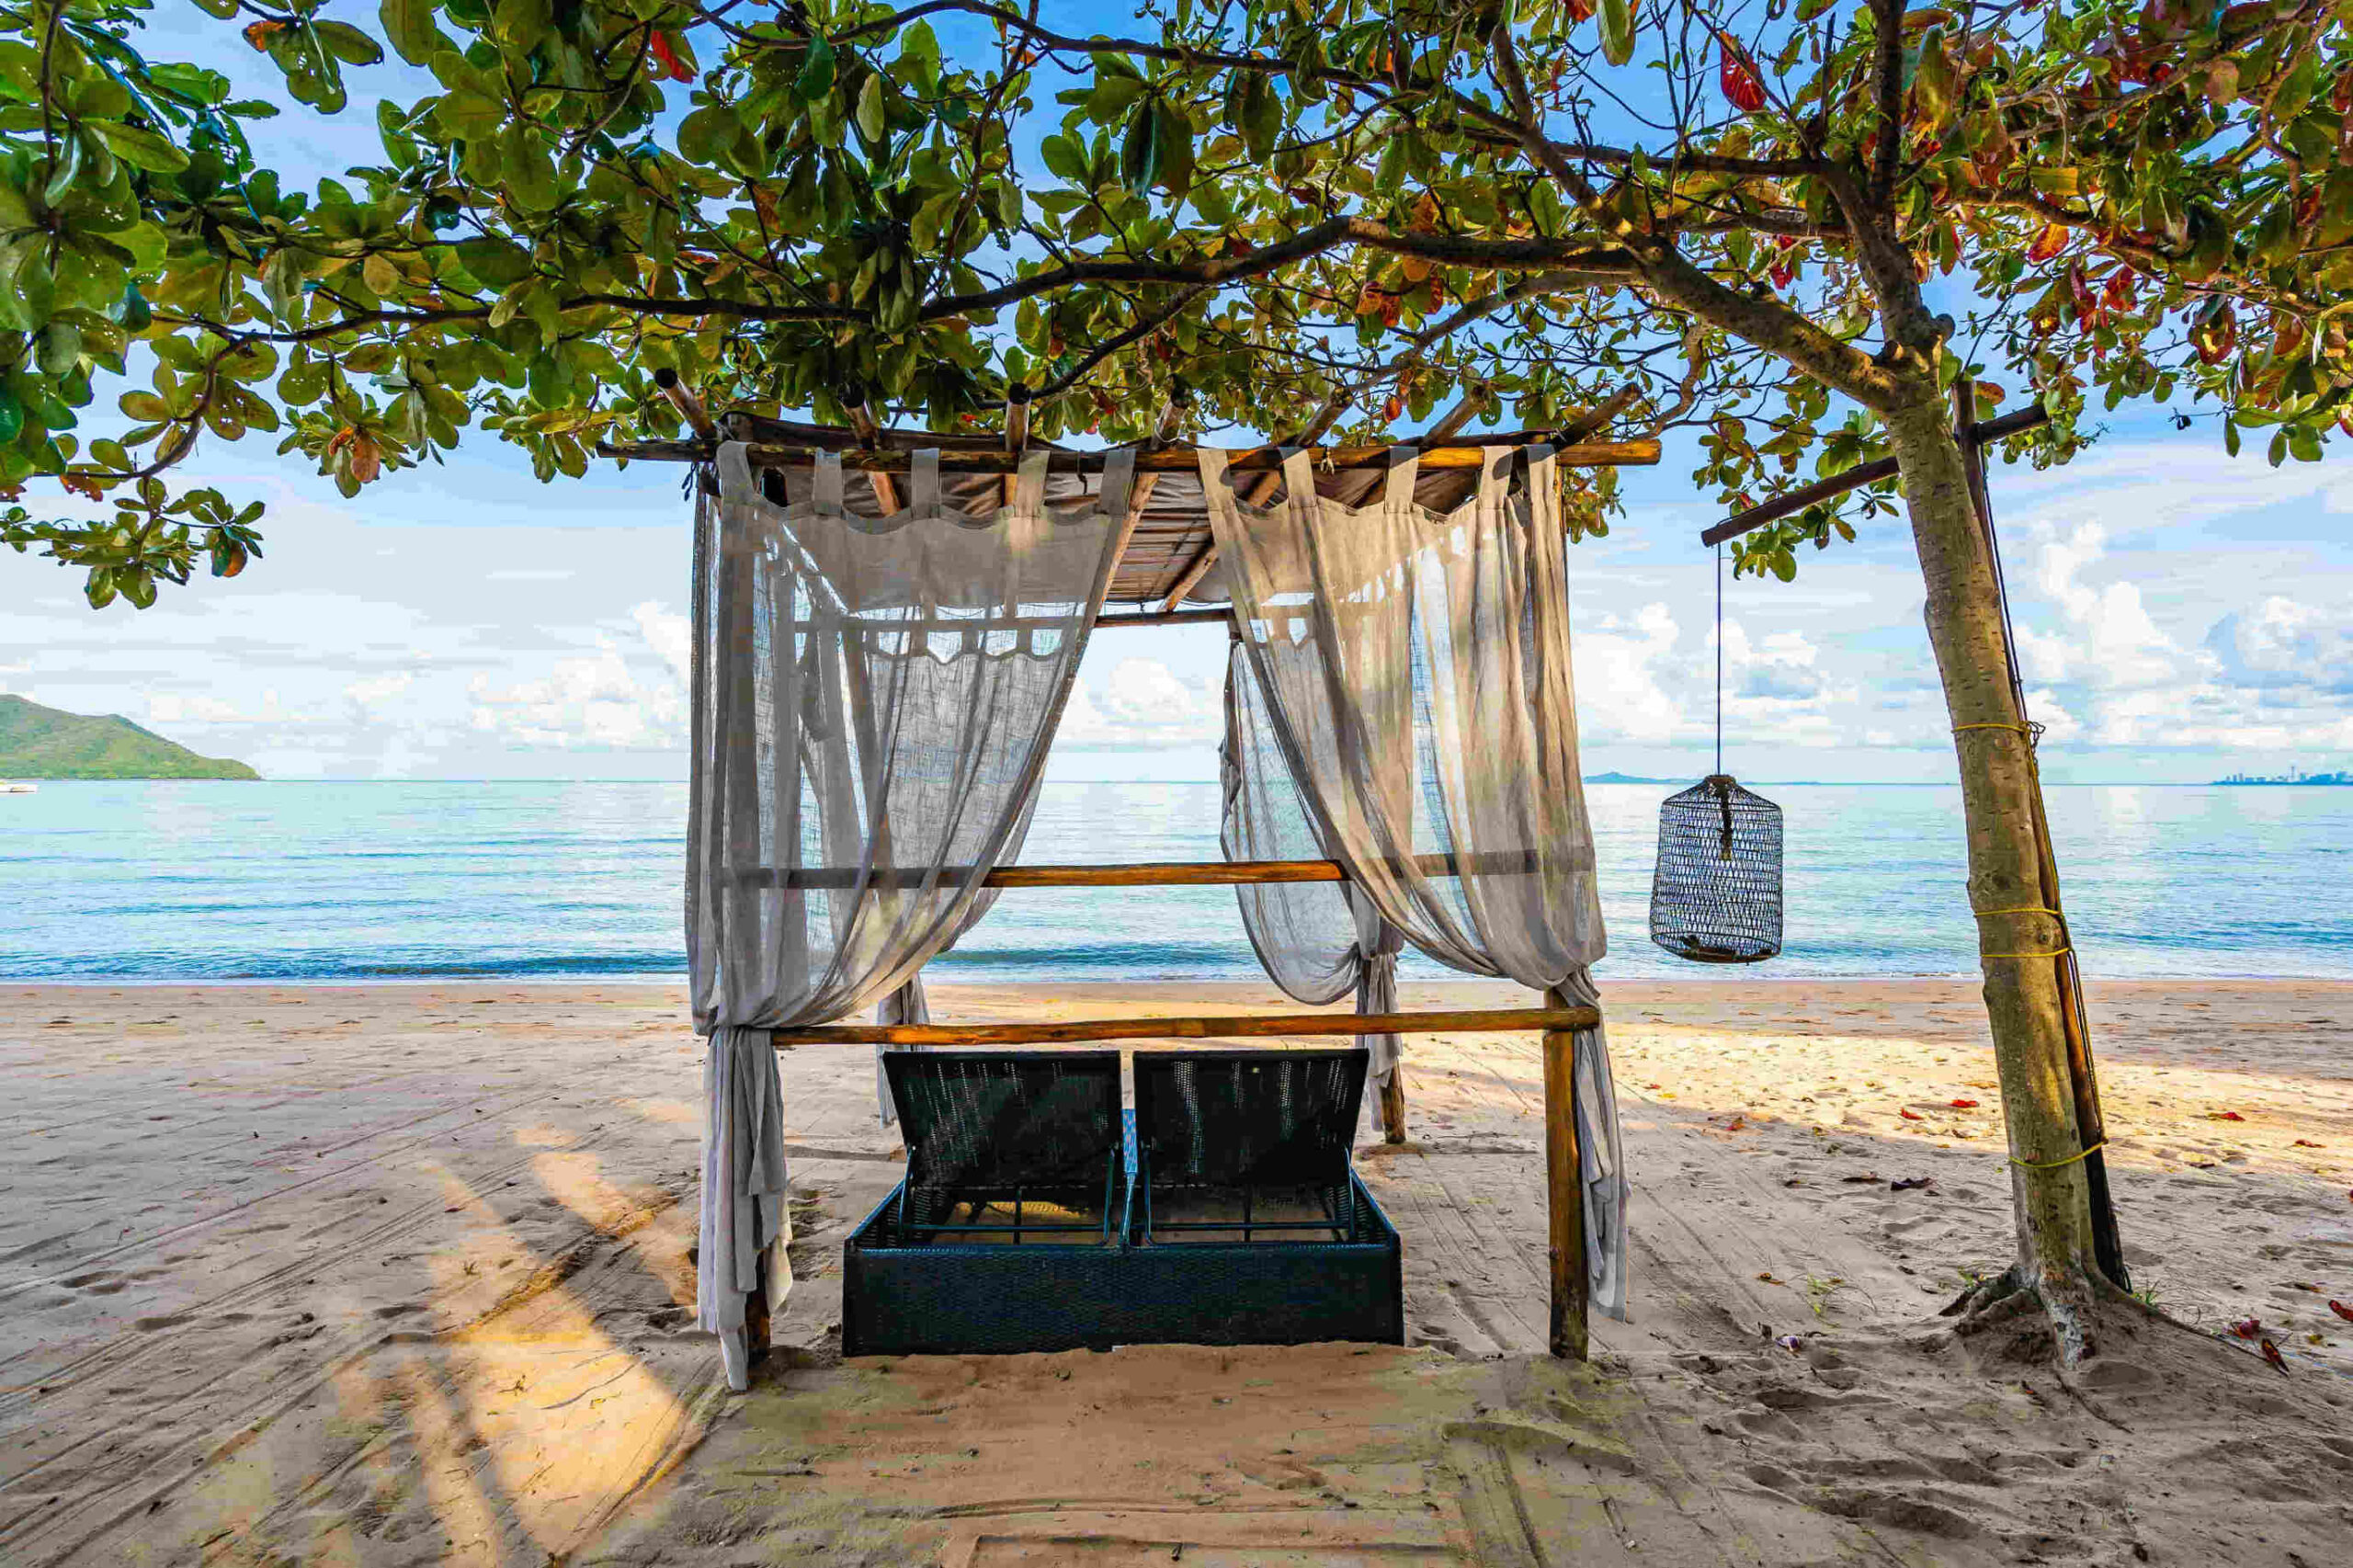 Two sunloungers on the beach in Mauritius